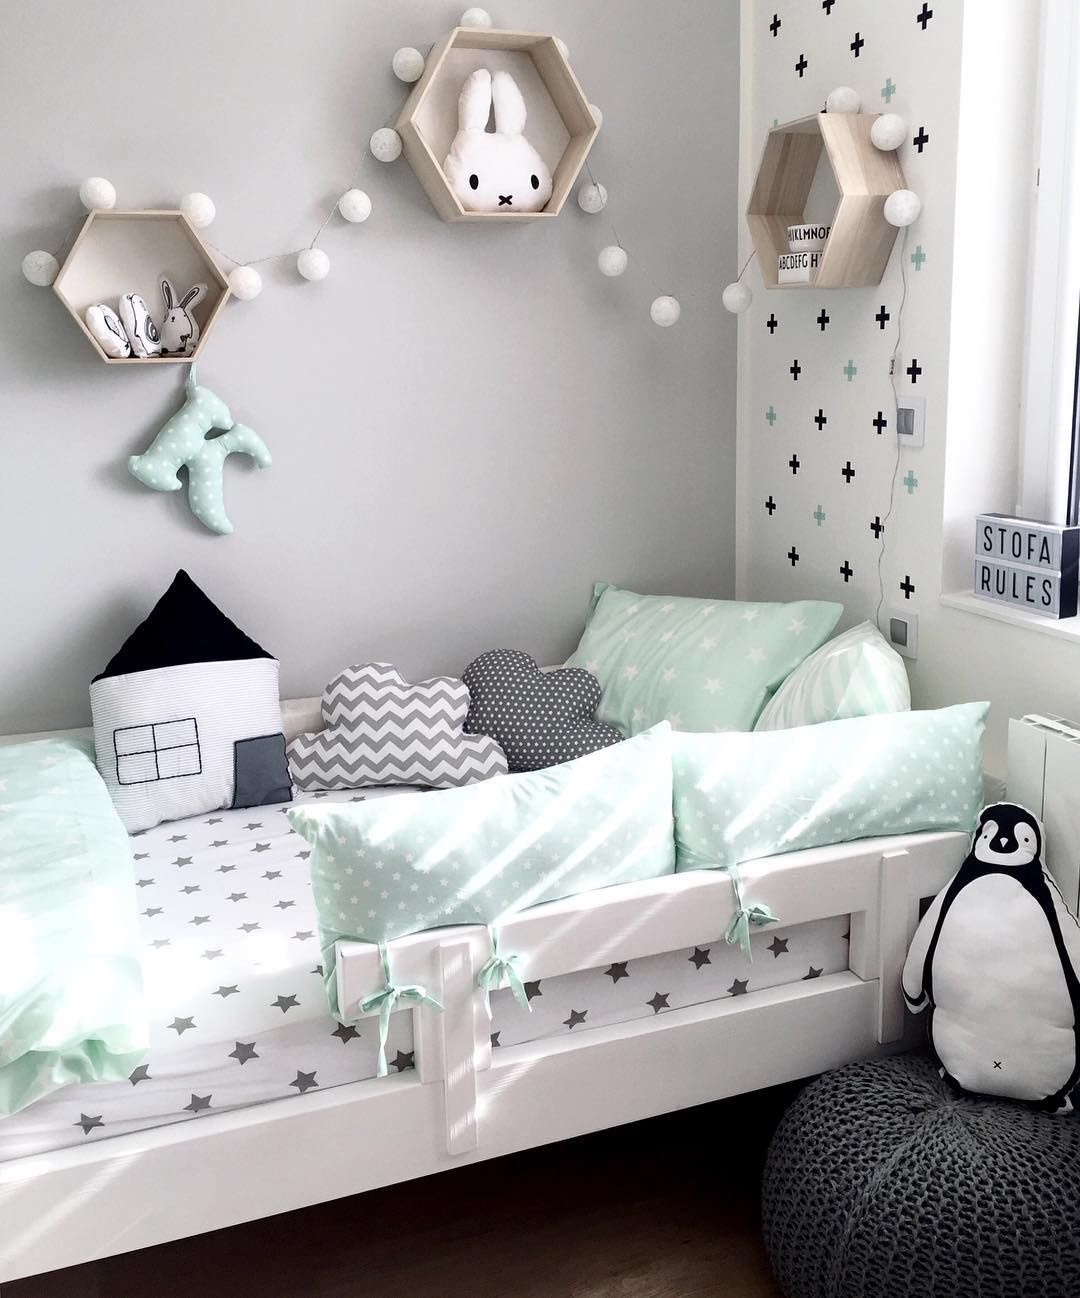 Kids Bedroom Colour Photo Taken By Kmart Home N Bargains On Instagram Pinned Via The